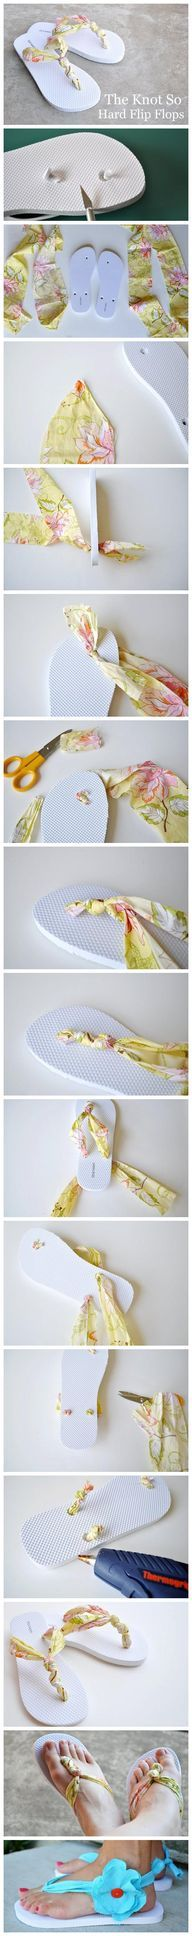 Want new, improved flip flops? How to: Cut out the straps. Get you ribbon and fold it in half (make sure it's long enough for you whole flip flop) and push some through the first hole. Tie it on the BOTTOM of the show and cut of the access. On the top of the ribbon (where it will act as the strap) tie knots until you get it where you want it then take the two ends and push through both holes and tie at the BOTTOM and cut off access. Tip: Use hot glue at the bottom to sucre the ribbon.